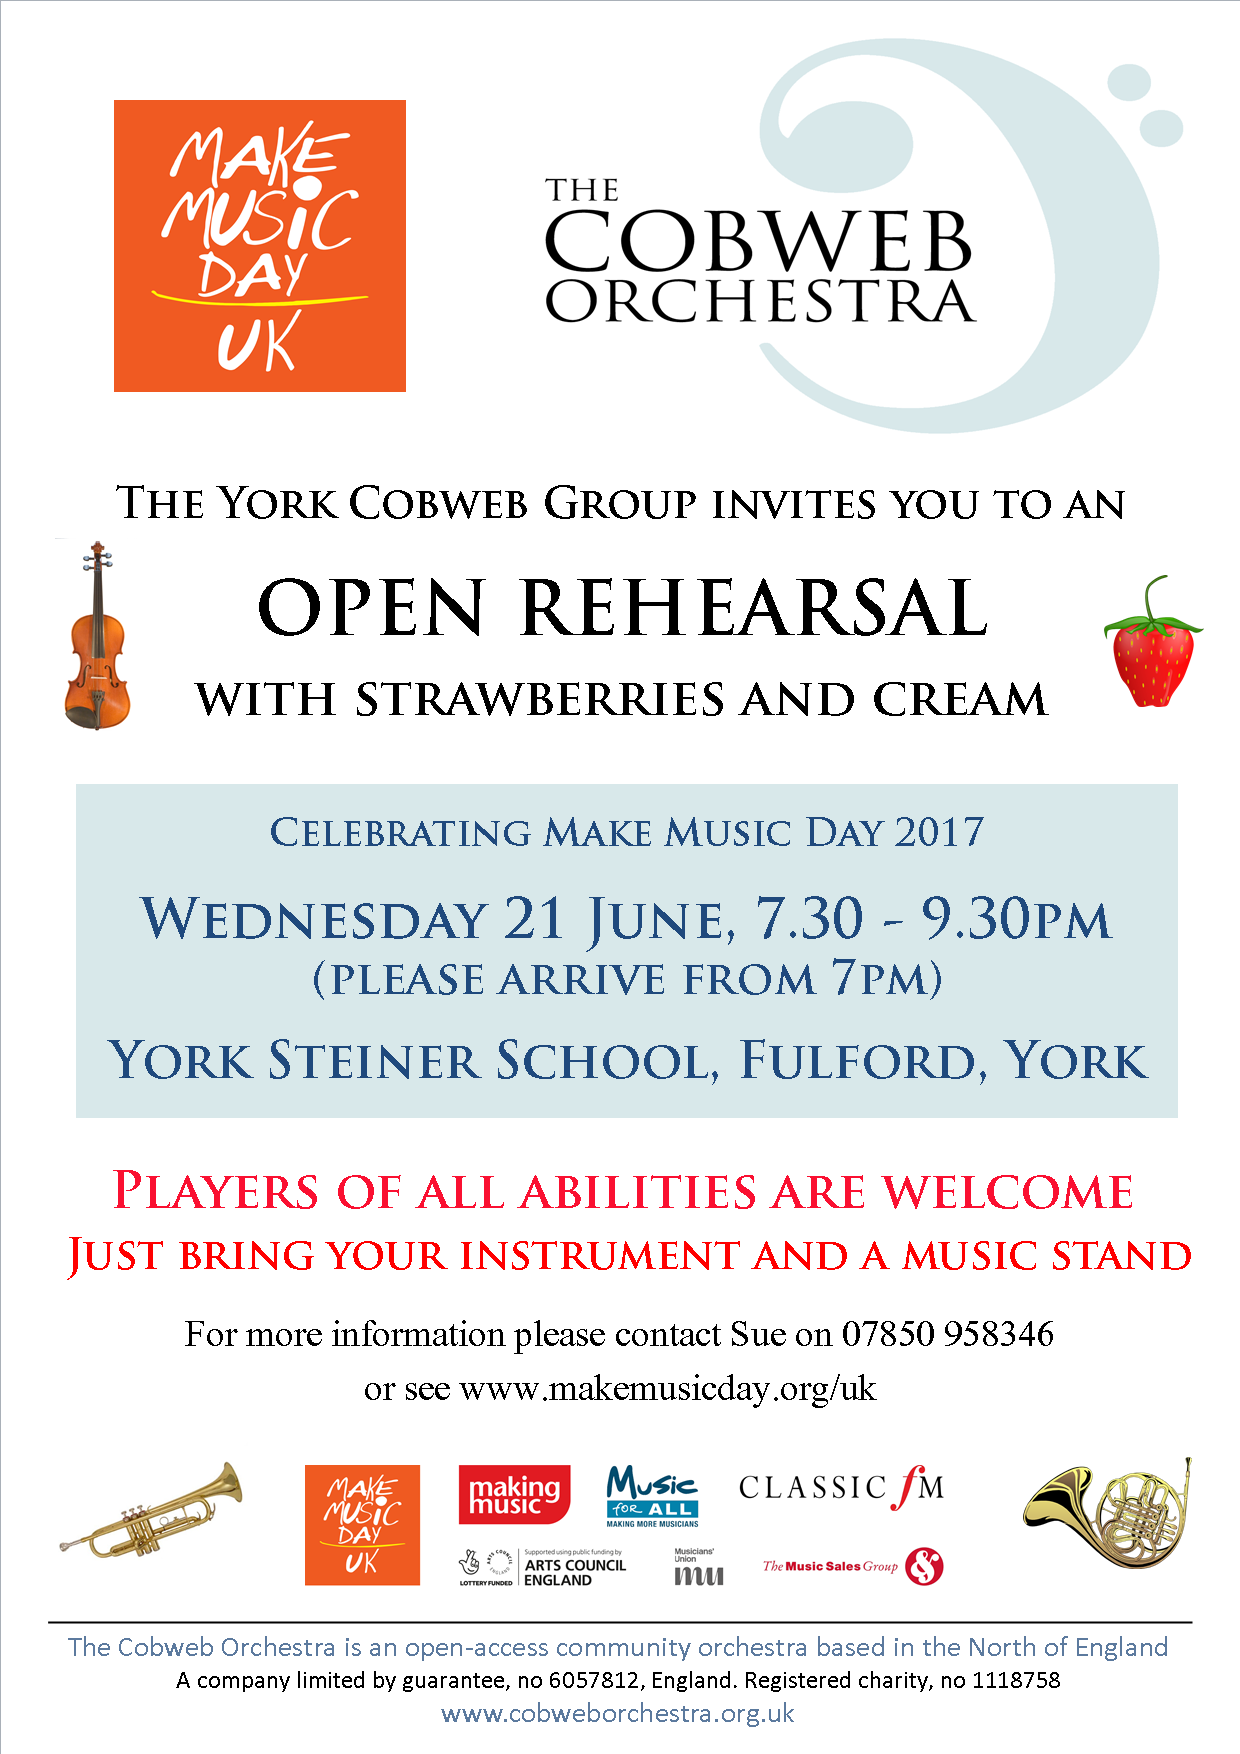 Make Music Day - York Cobweb Orchestra Open Rehearsal